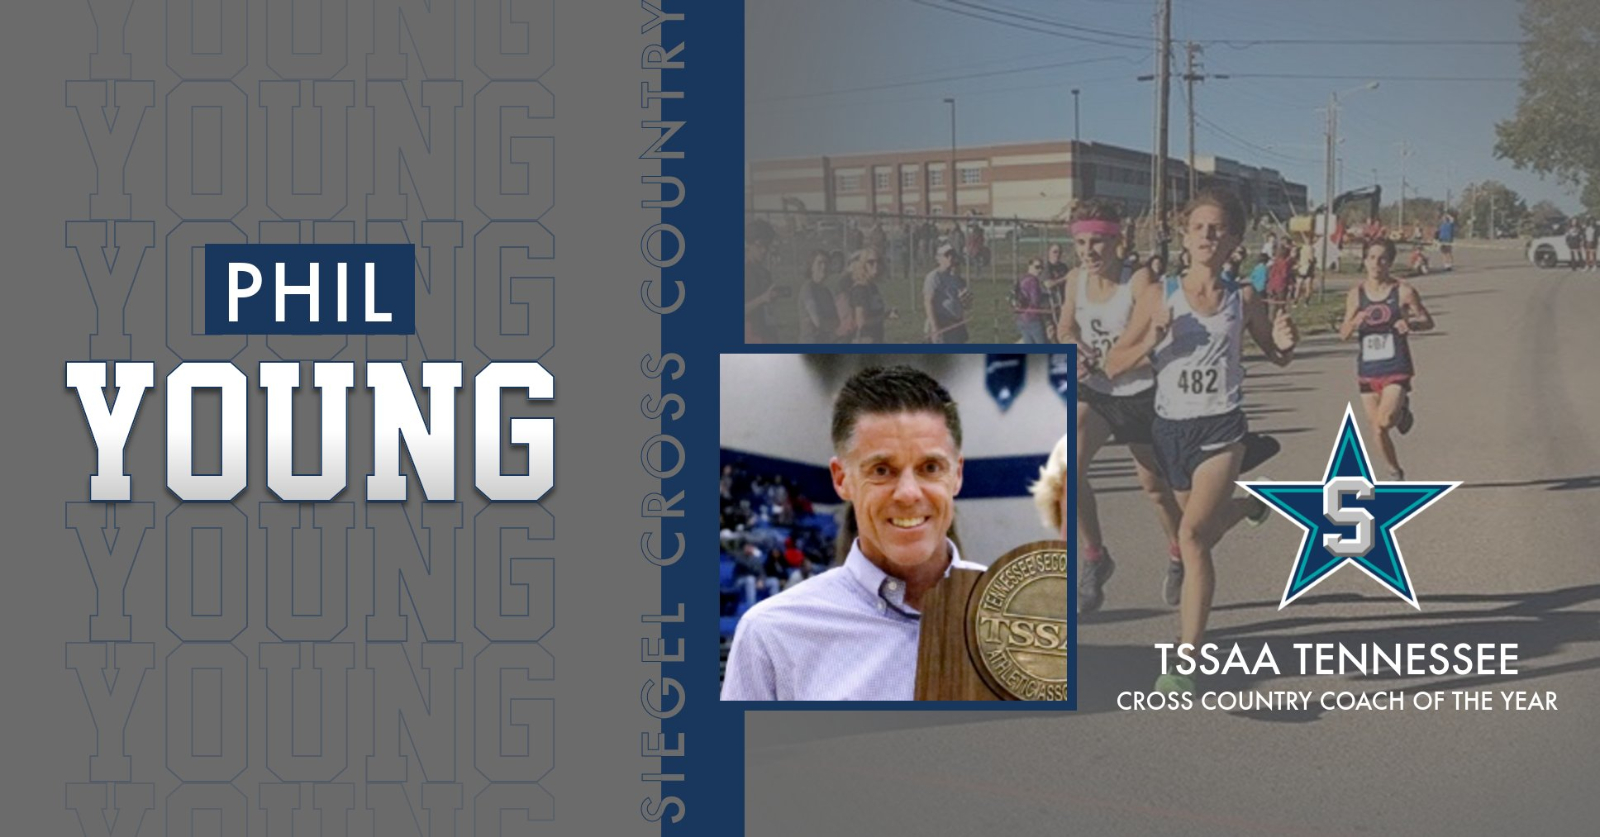 Coach Phil Young Selected as TSSAA Cross Country Coach of the Year